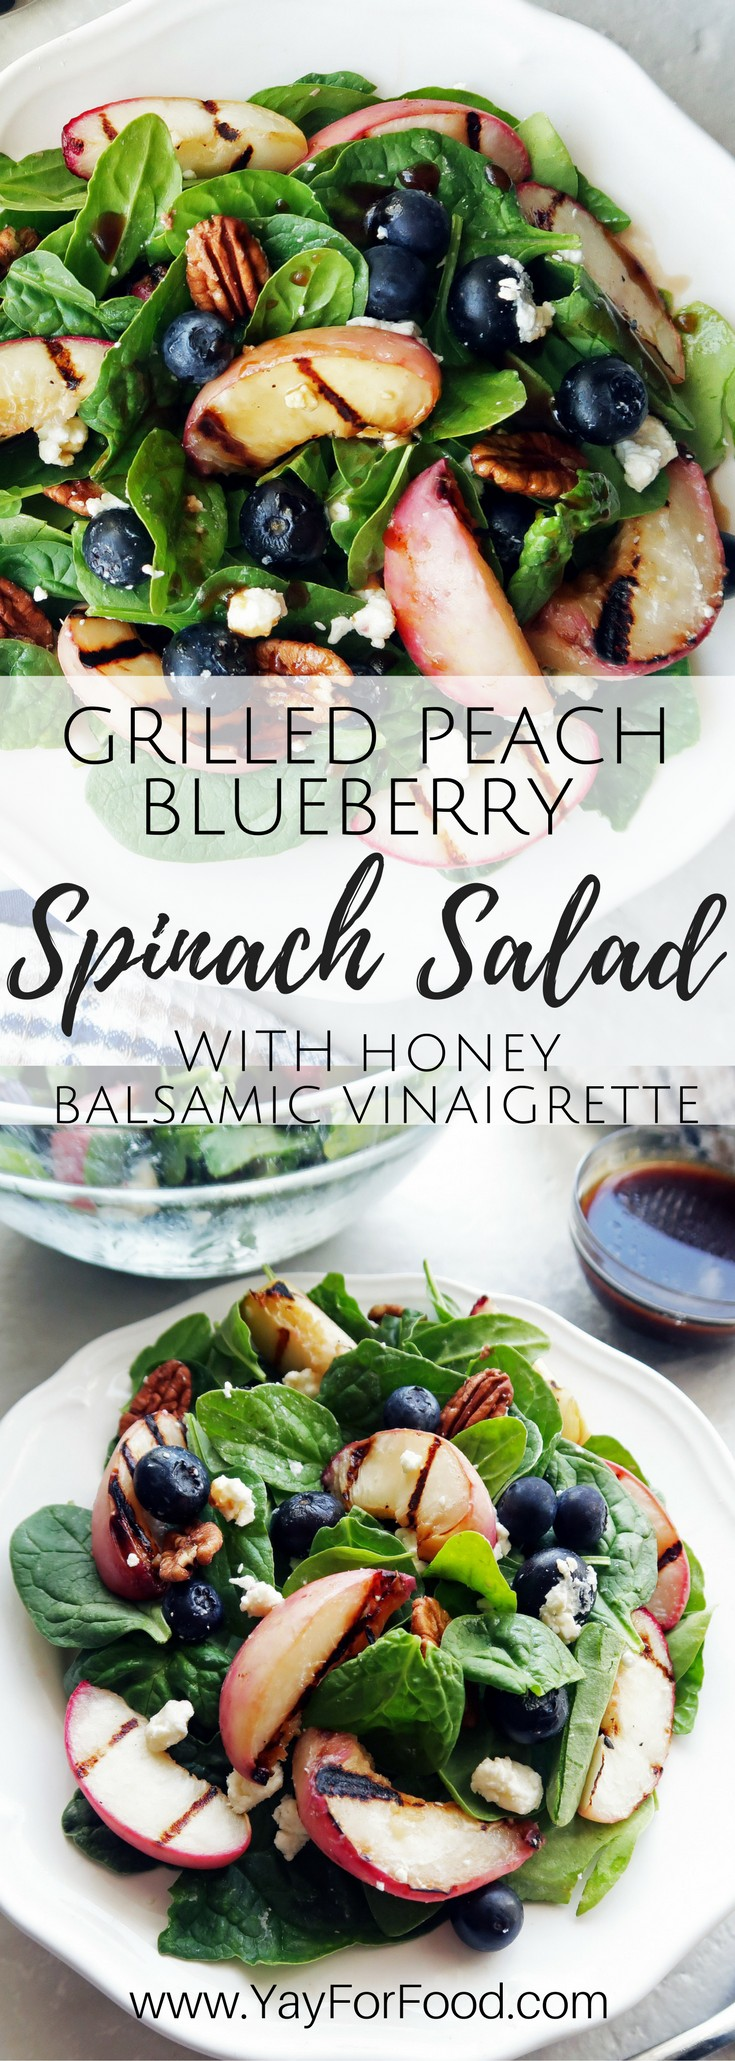 A fresh summer salad with grilled peaches, blueberries, feta, and pecans! A simple honey balsamic vinaigrette complements the sweet, salty, and nutty flavours!